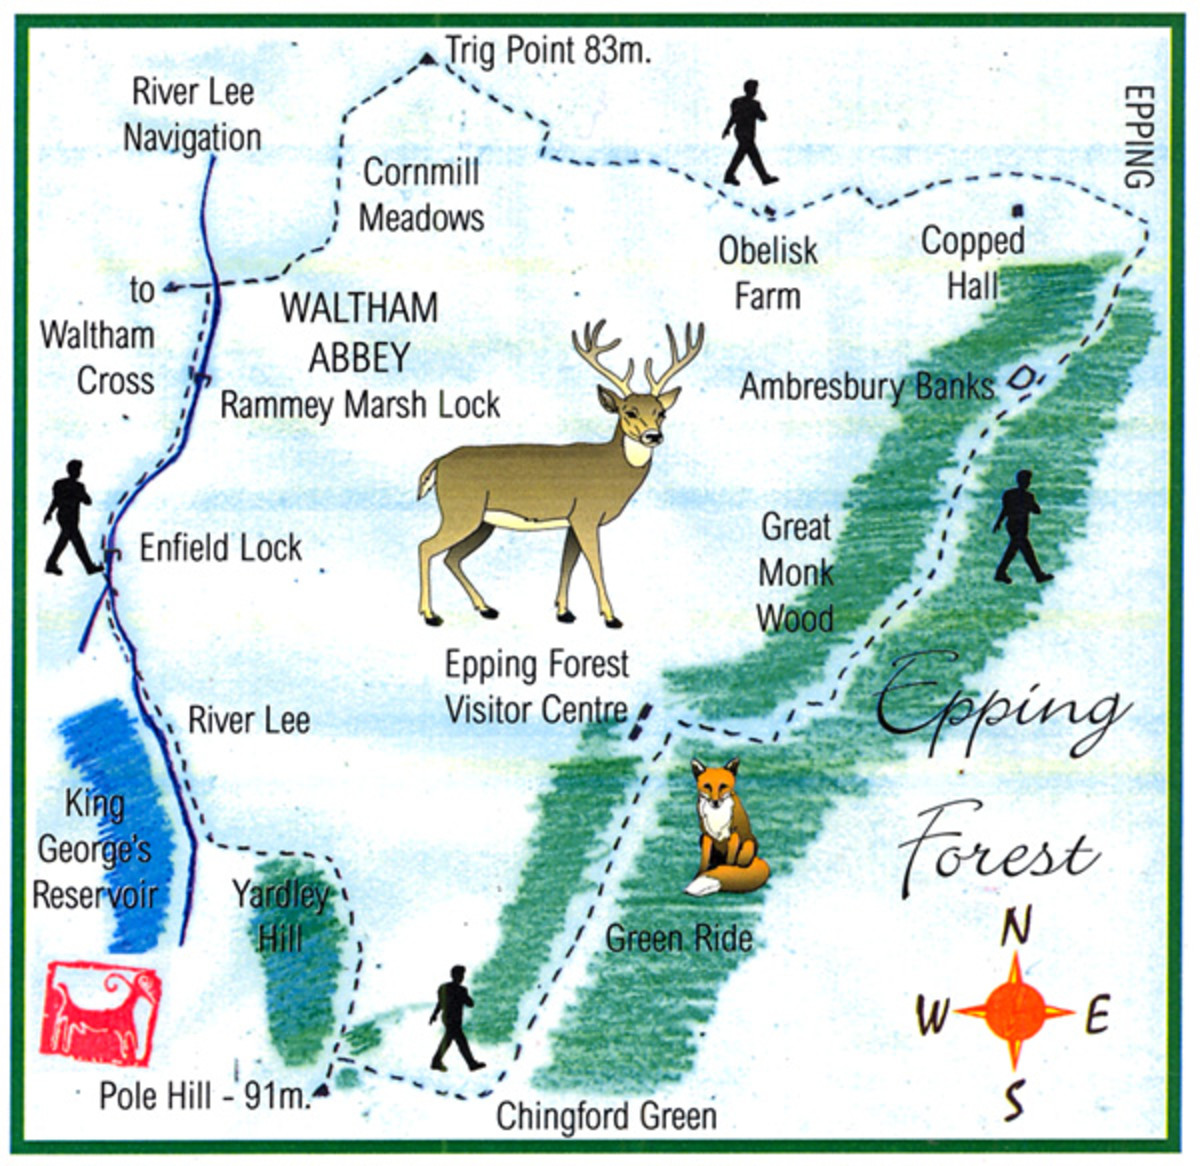 Fancy a real challenge? The Epping Forest Challenge Walk might be up your street